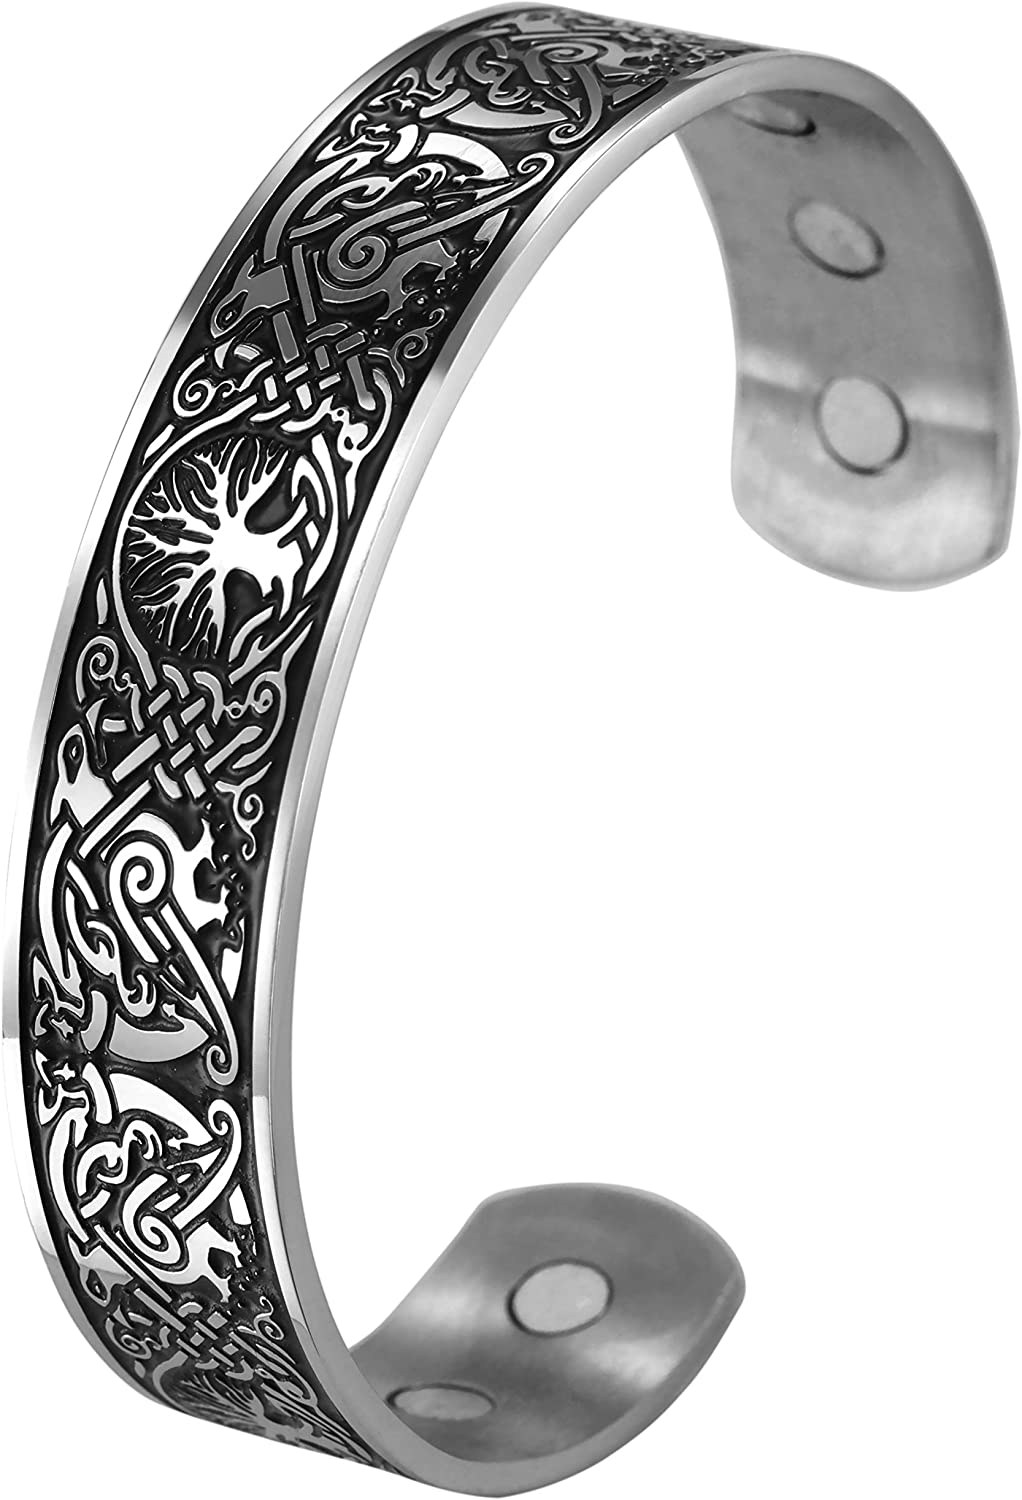 VASSAGO Stainless Steel Tree of Life Cuff Bangle Viking Celtic knot Phoenix Pattern Health Care Bracelets Metal Wristband for Men